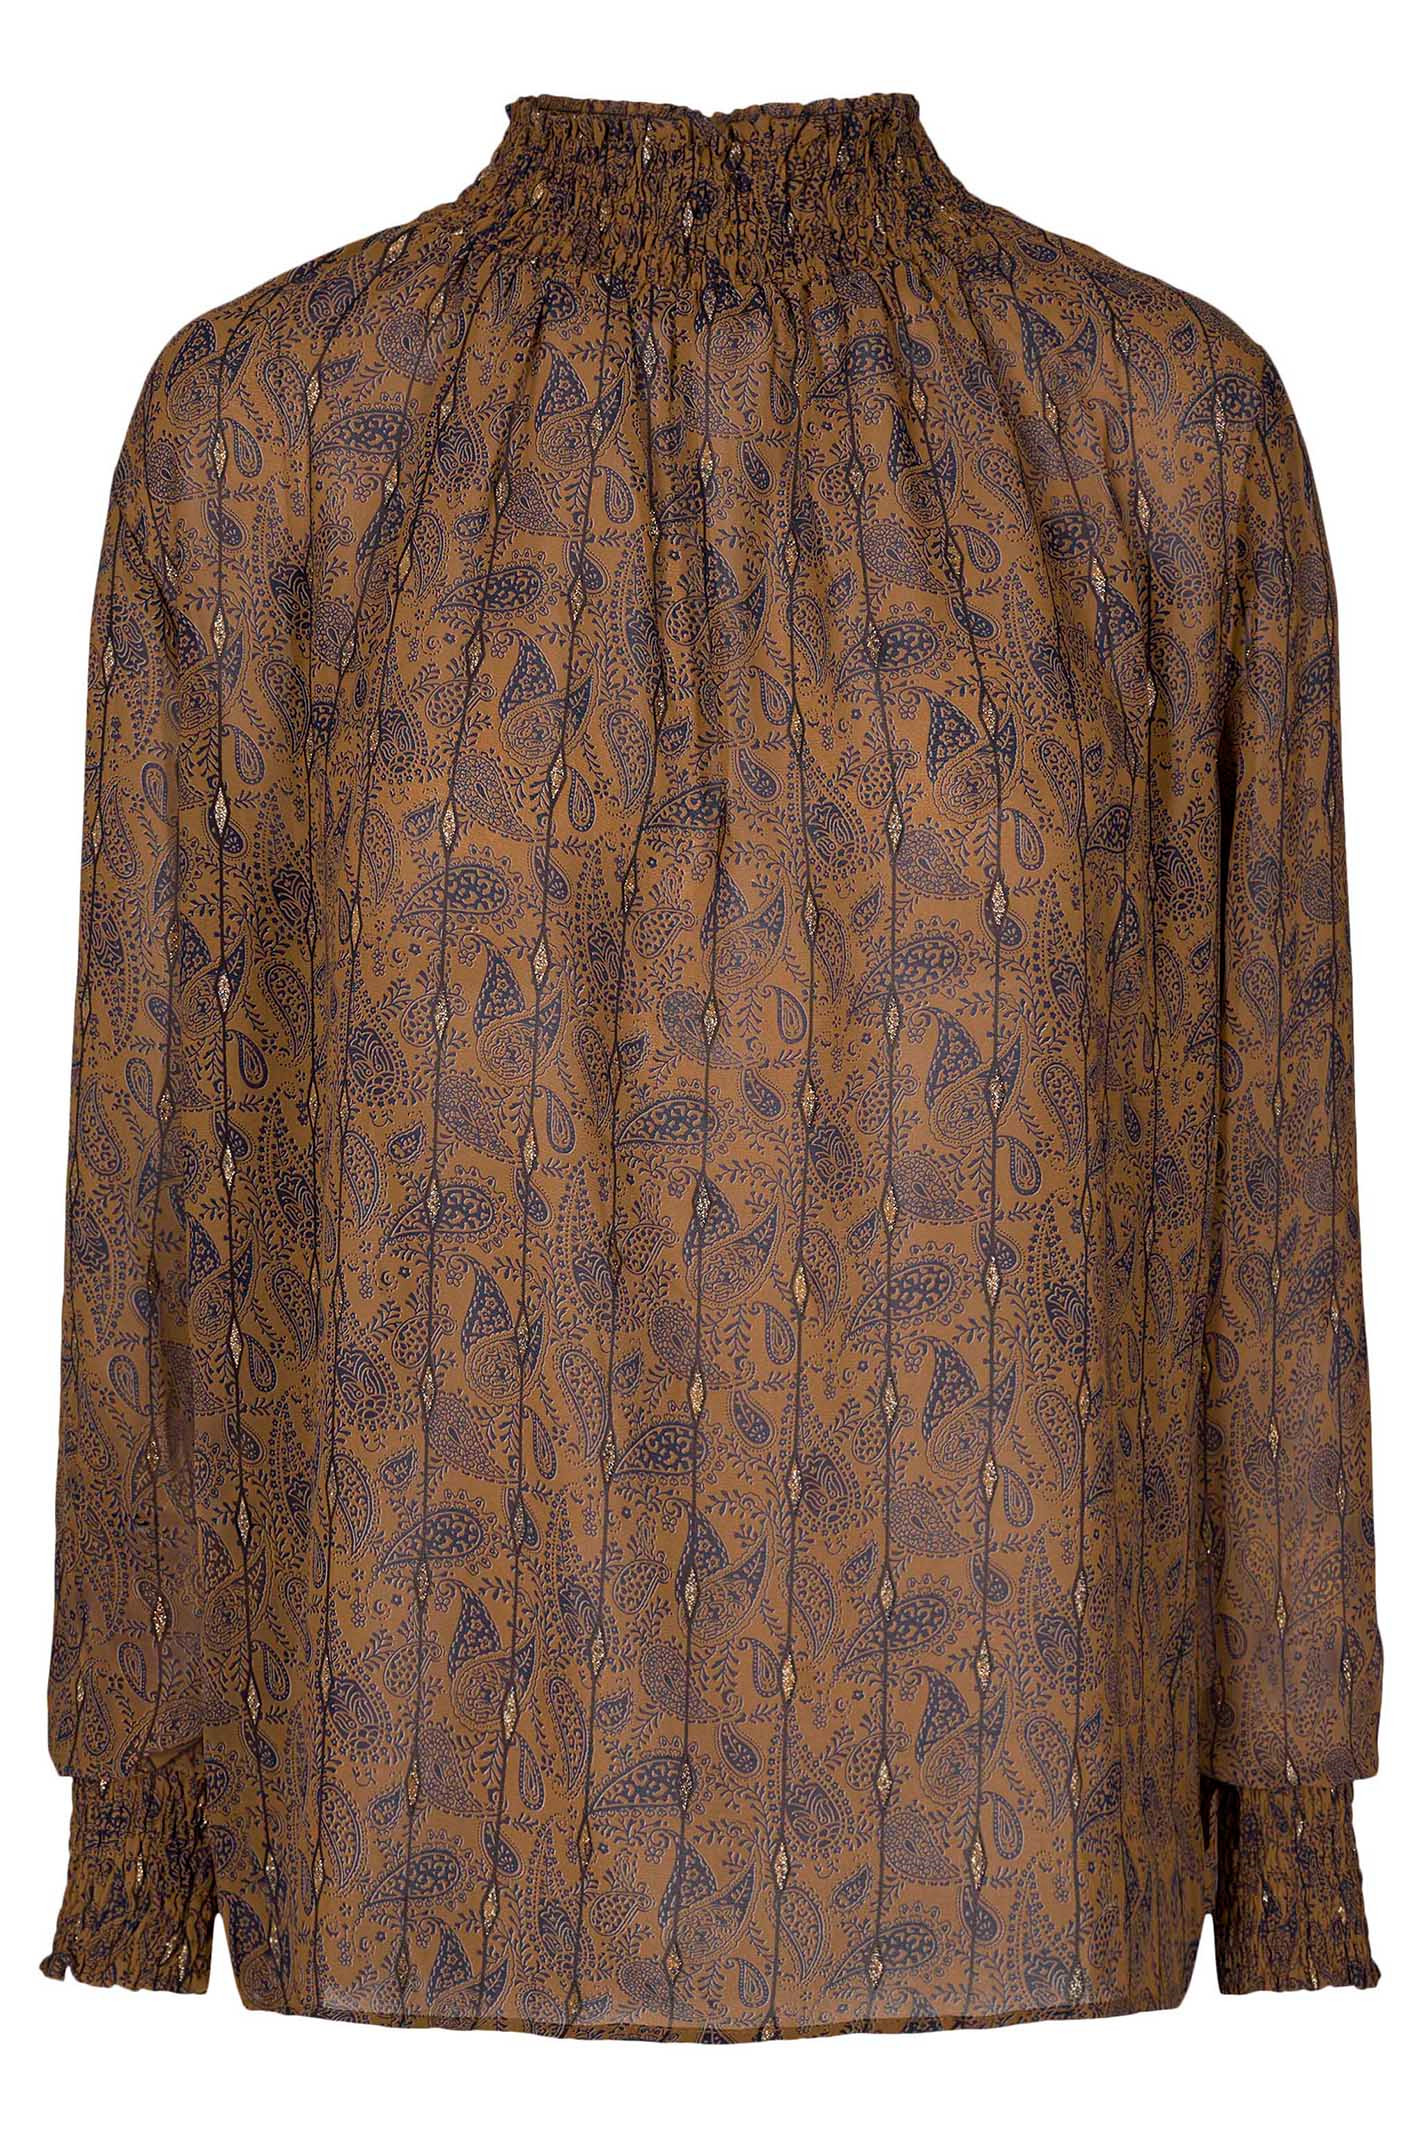 CO'COUTURE MANIC SMOCK 95249 COGNAC